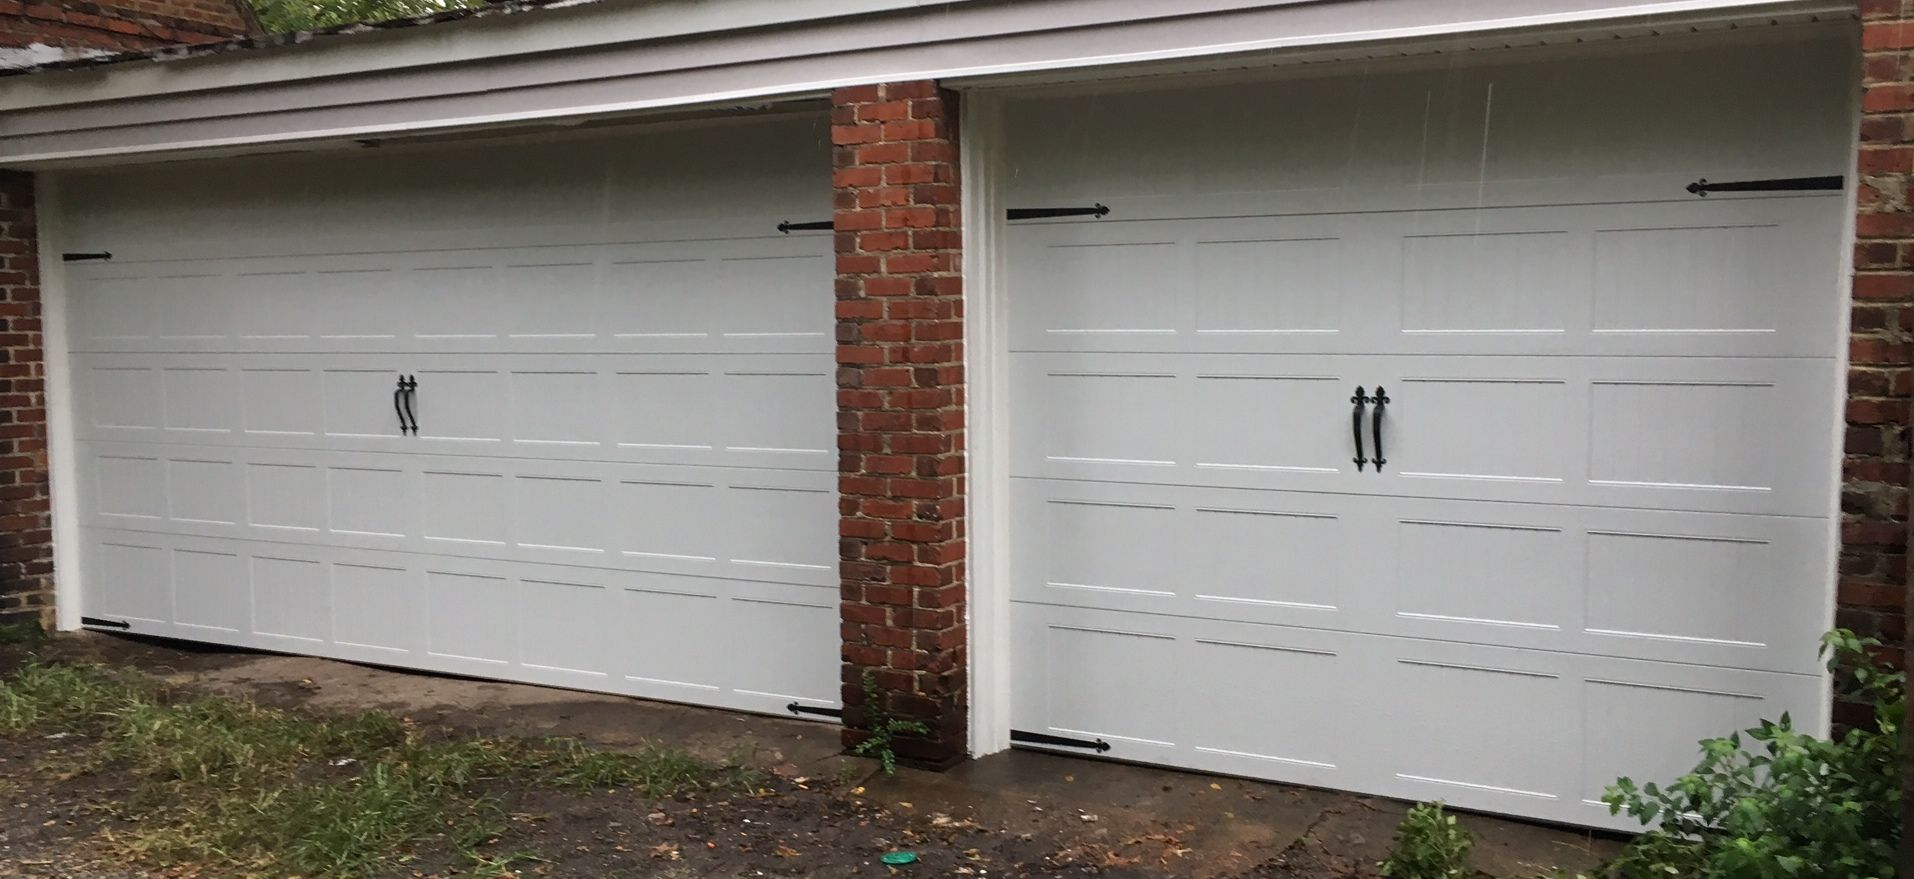 9x8 And 16x8 Model 5216 Carriage Style Stamped Garage Doors Installed By The Richmond Teamledoor